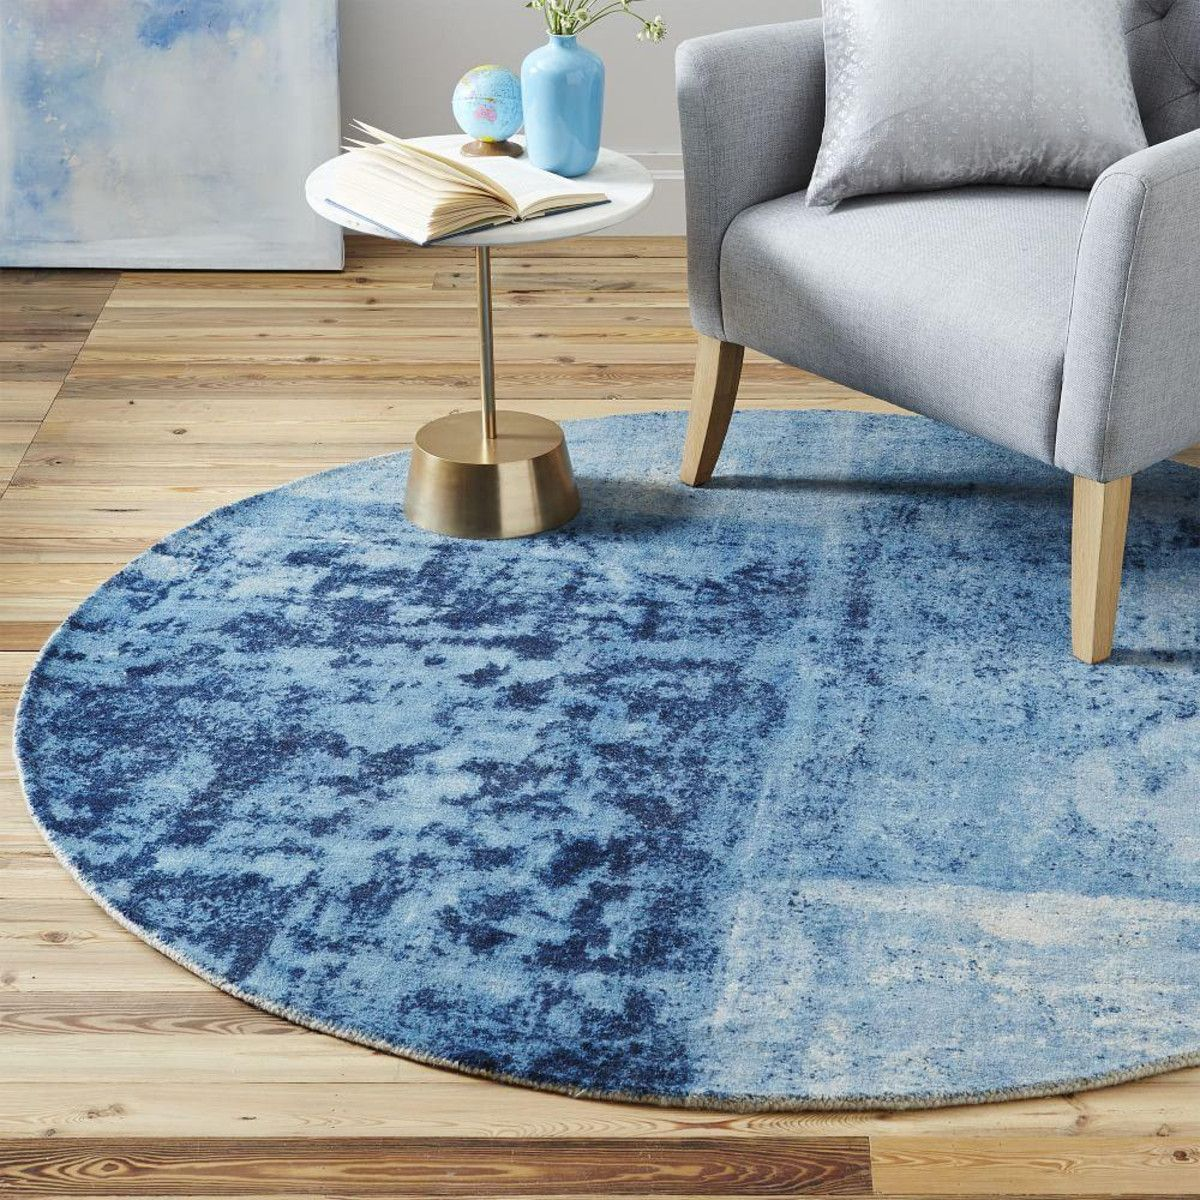 Distressed Rococo Wool Rug Round West Elm Au Rugs And